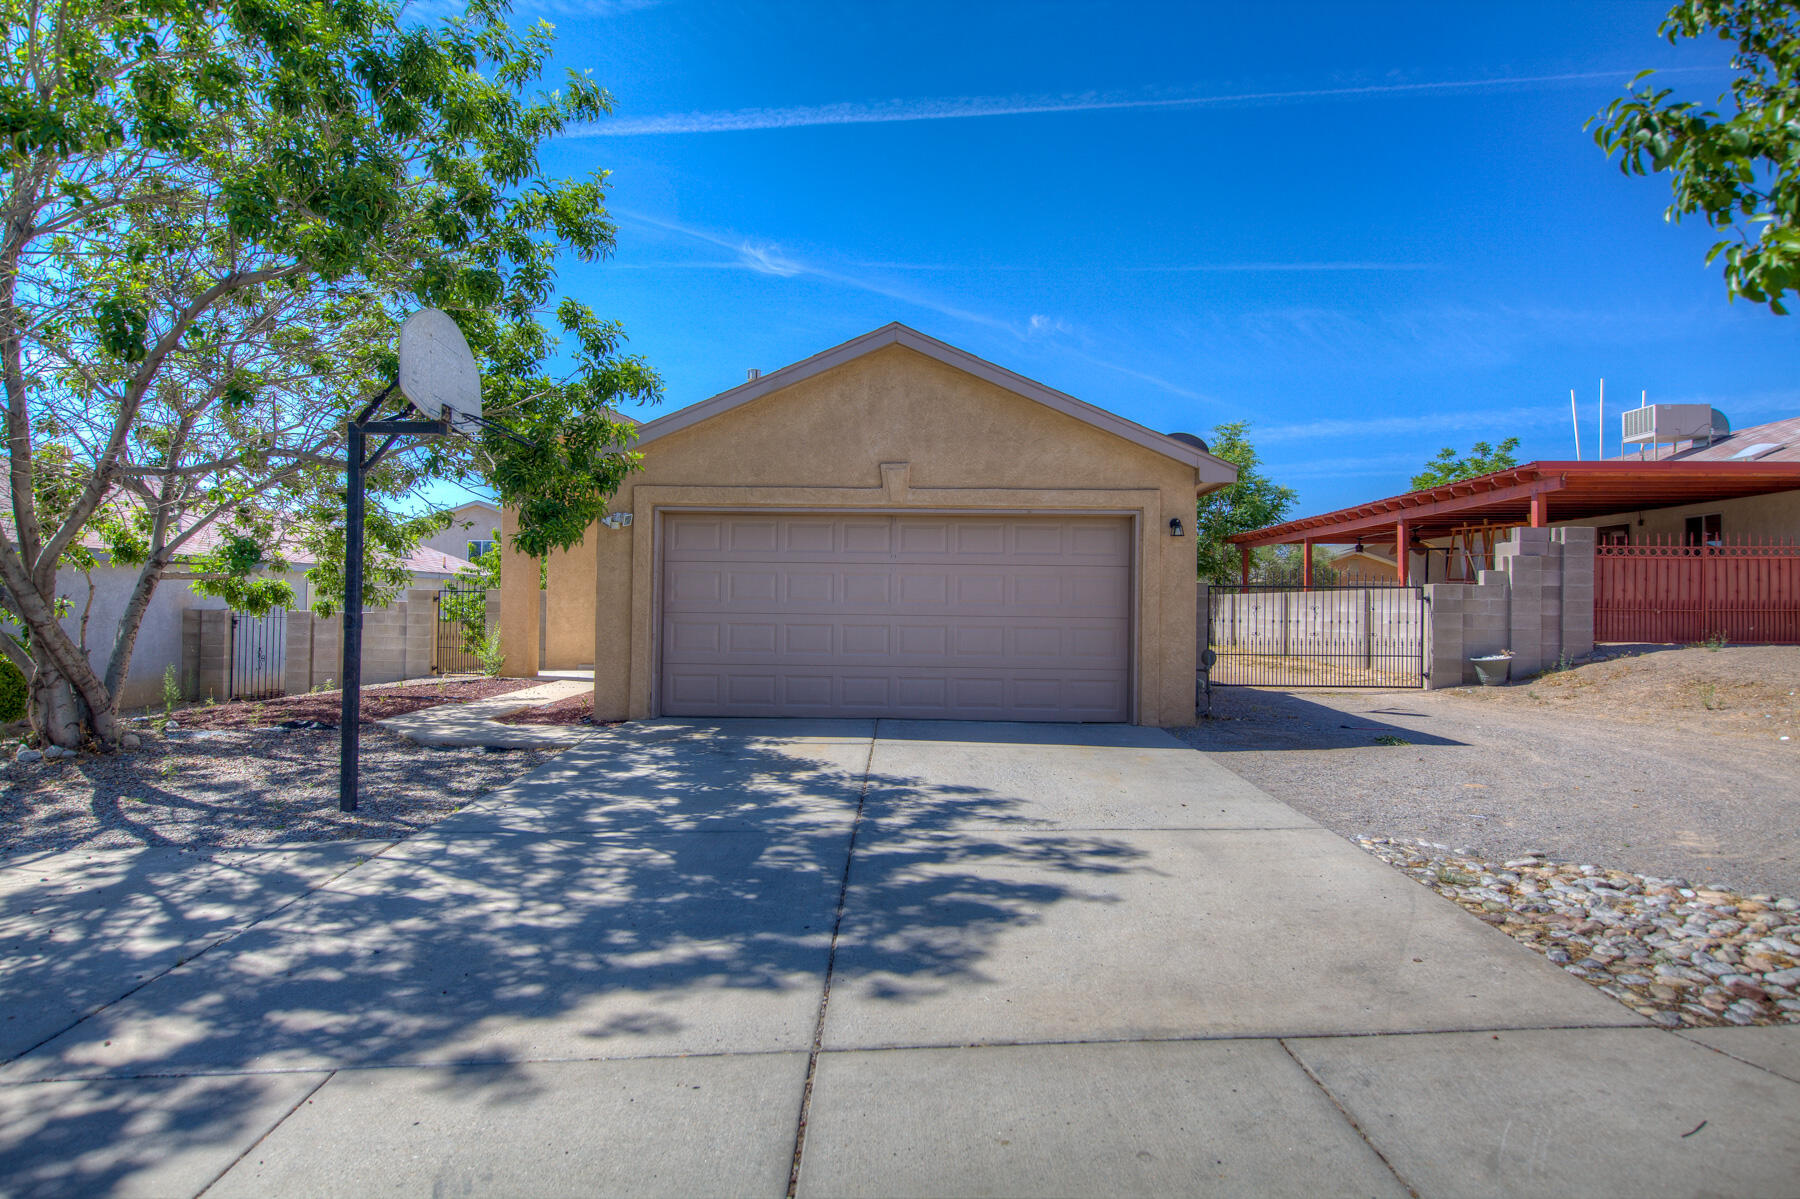 Great single story home  by FTS Construction.Home features 3 ample sized rooms with 2 full baths with Backyard access on a bigger sized yard with Fruit trees. New roof and paint. Ready to move in. Close to major streets and 1-40 West.